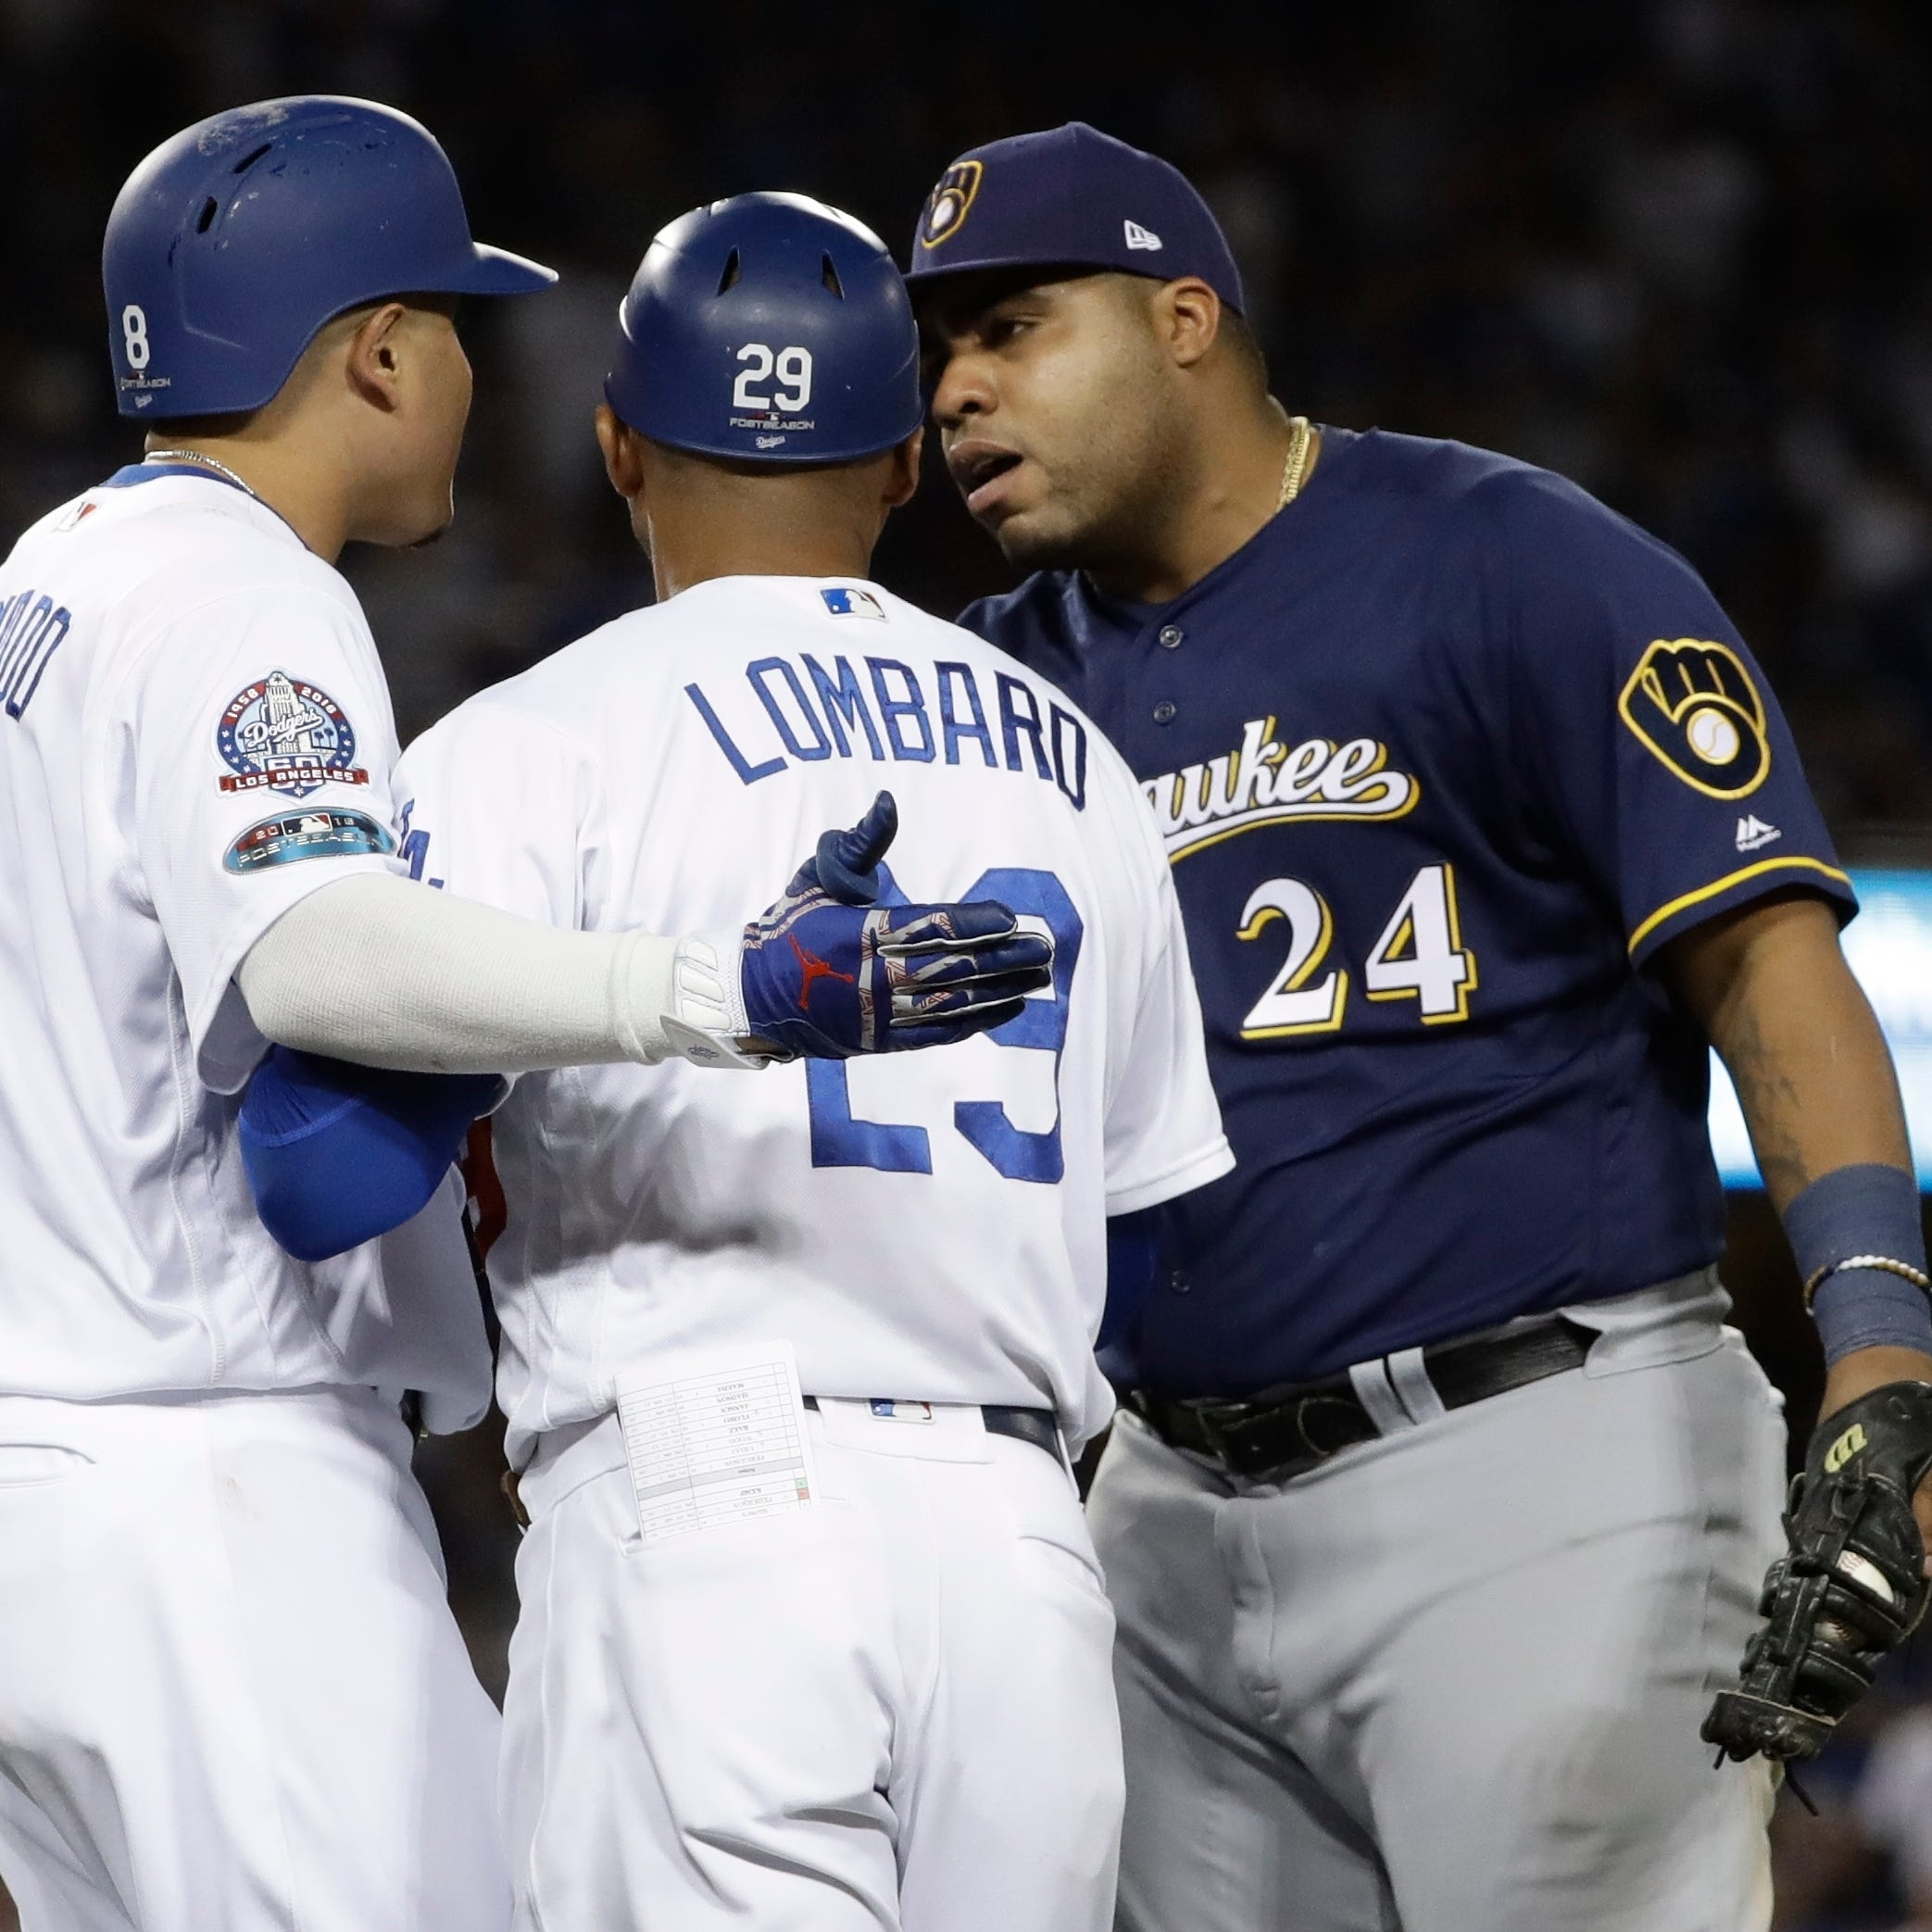 Brewers first baseman Jesus Aguilar has something to say to Manny Machado after the Dodgers shortstop clipped his heel on a groundout in the 10th inning of Game 4 on Tuesday.